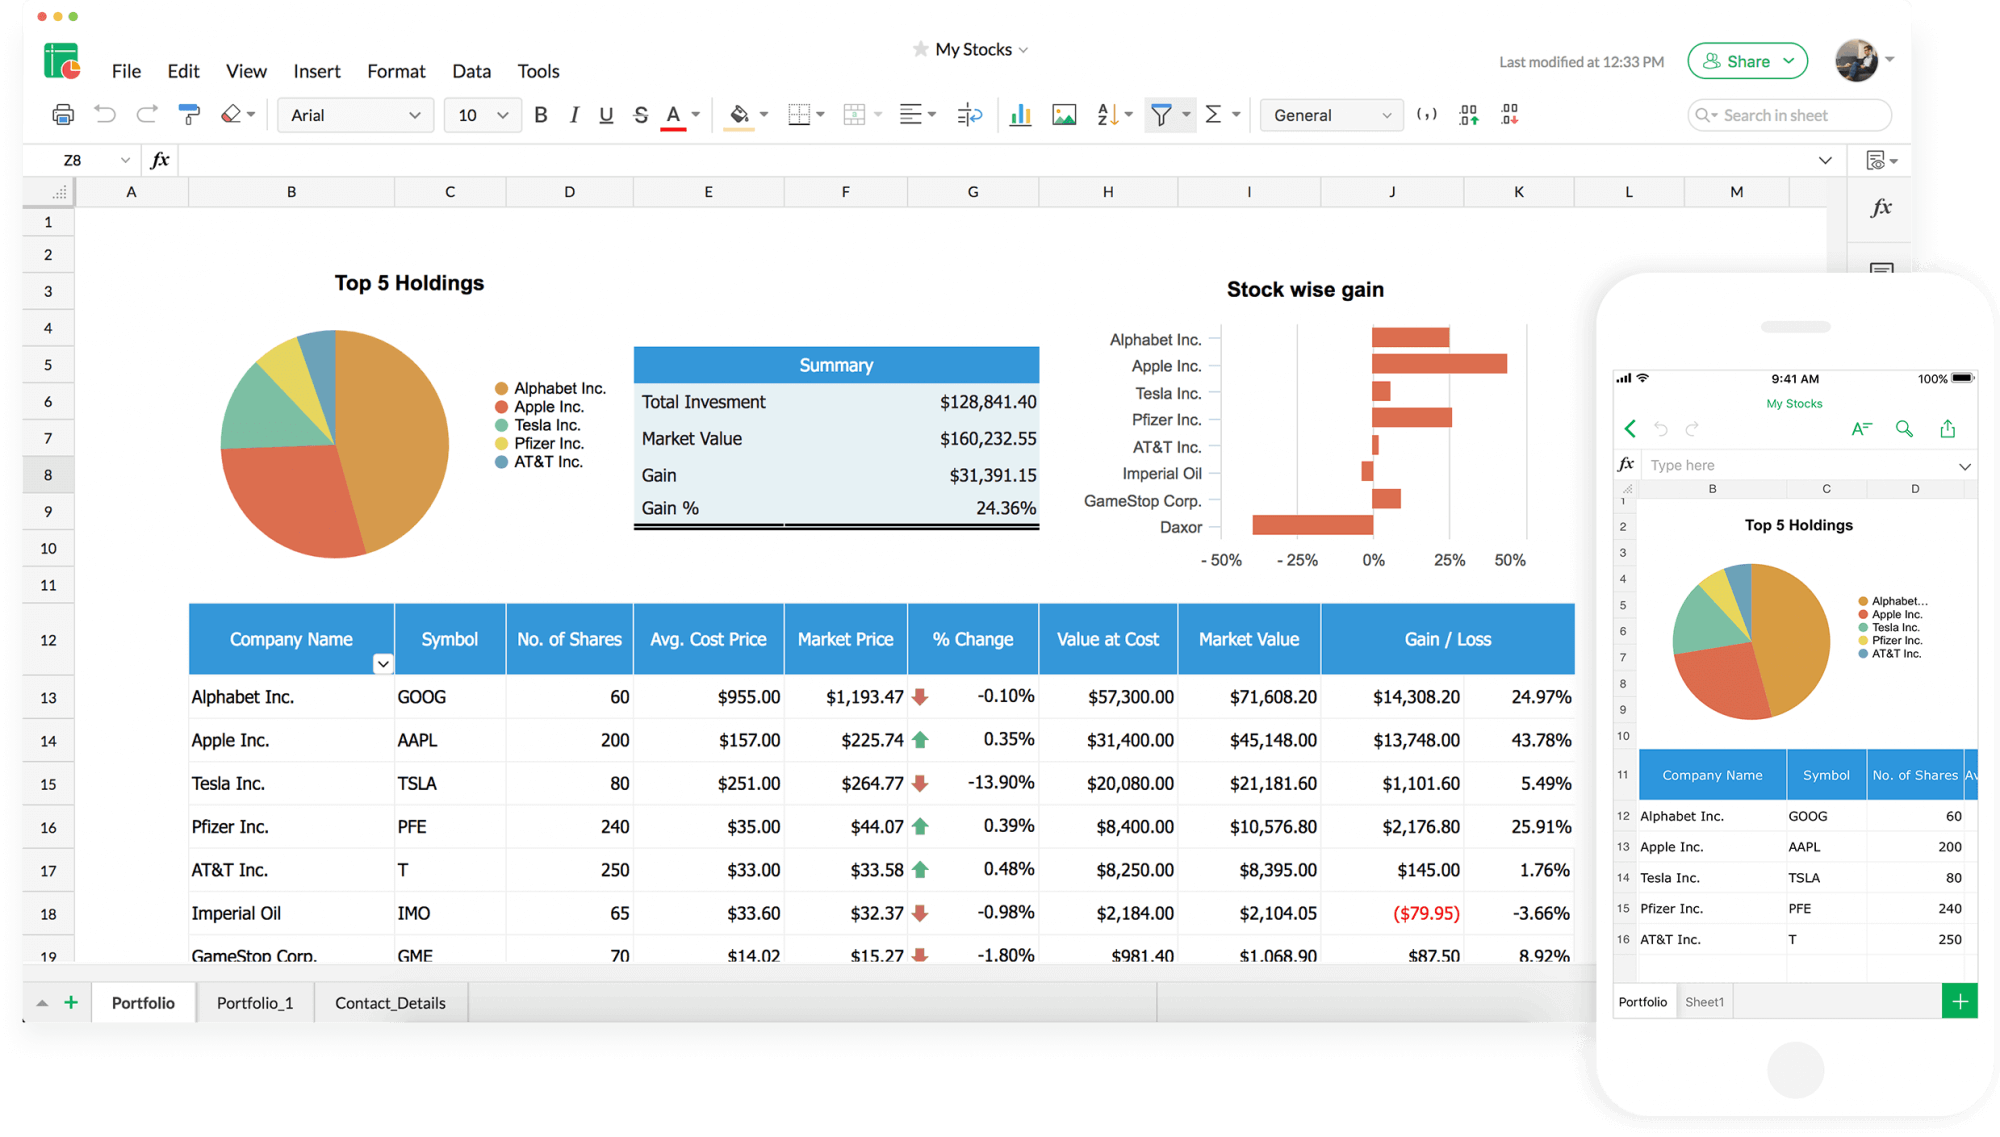 Online Spreadsheet Maker | Create Spreadsheets for free - Zoho Sheet